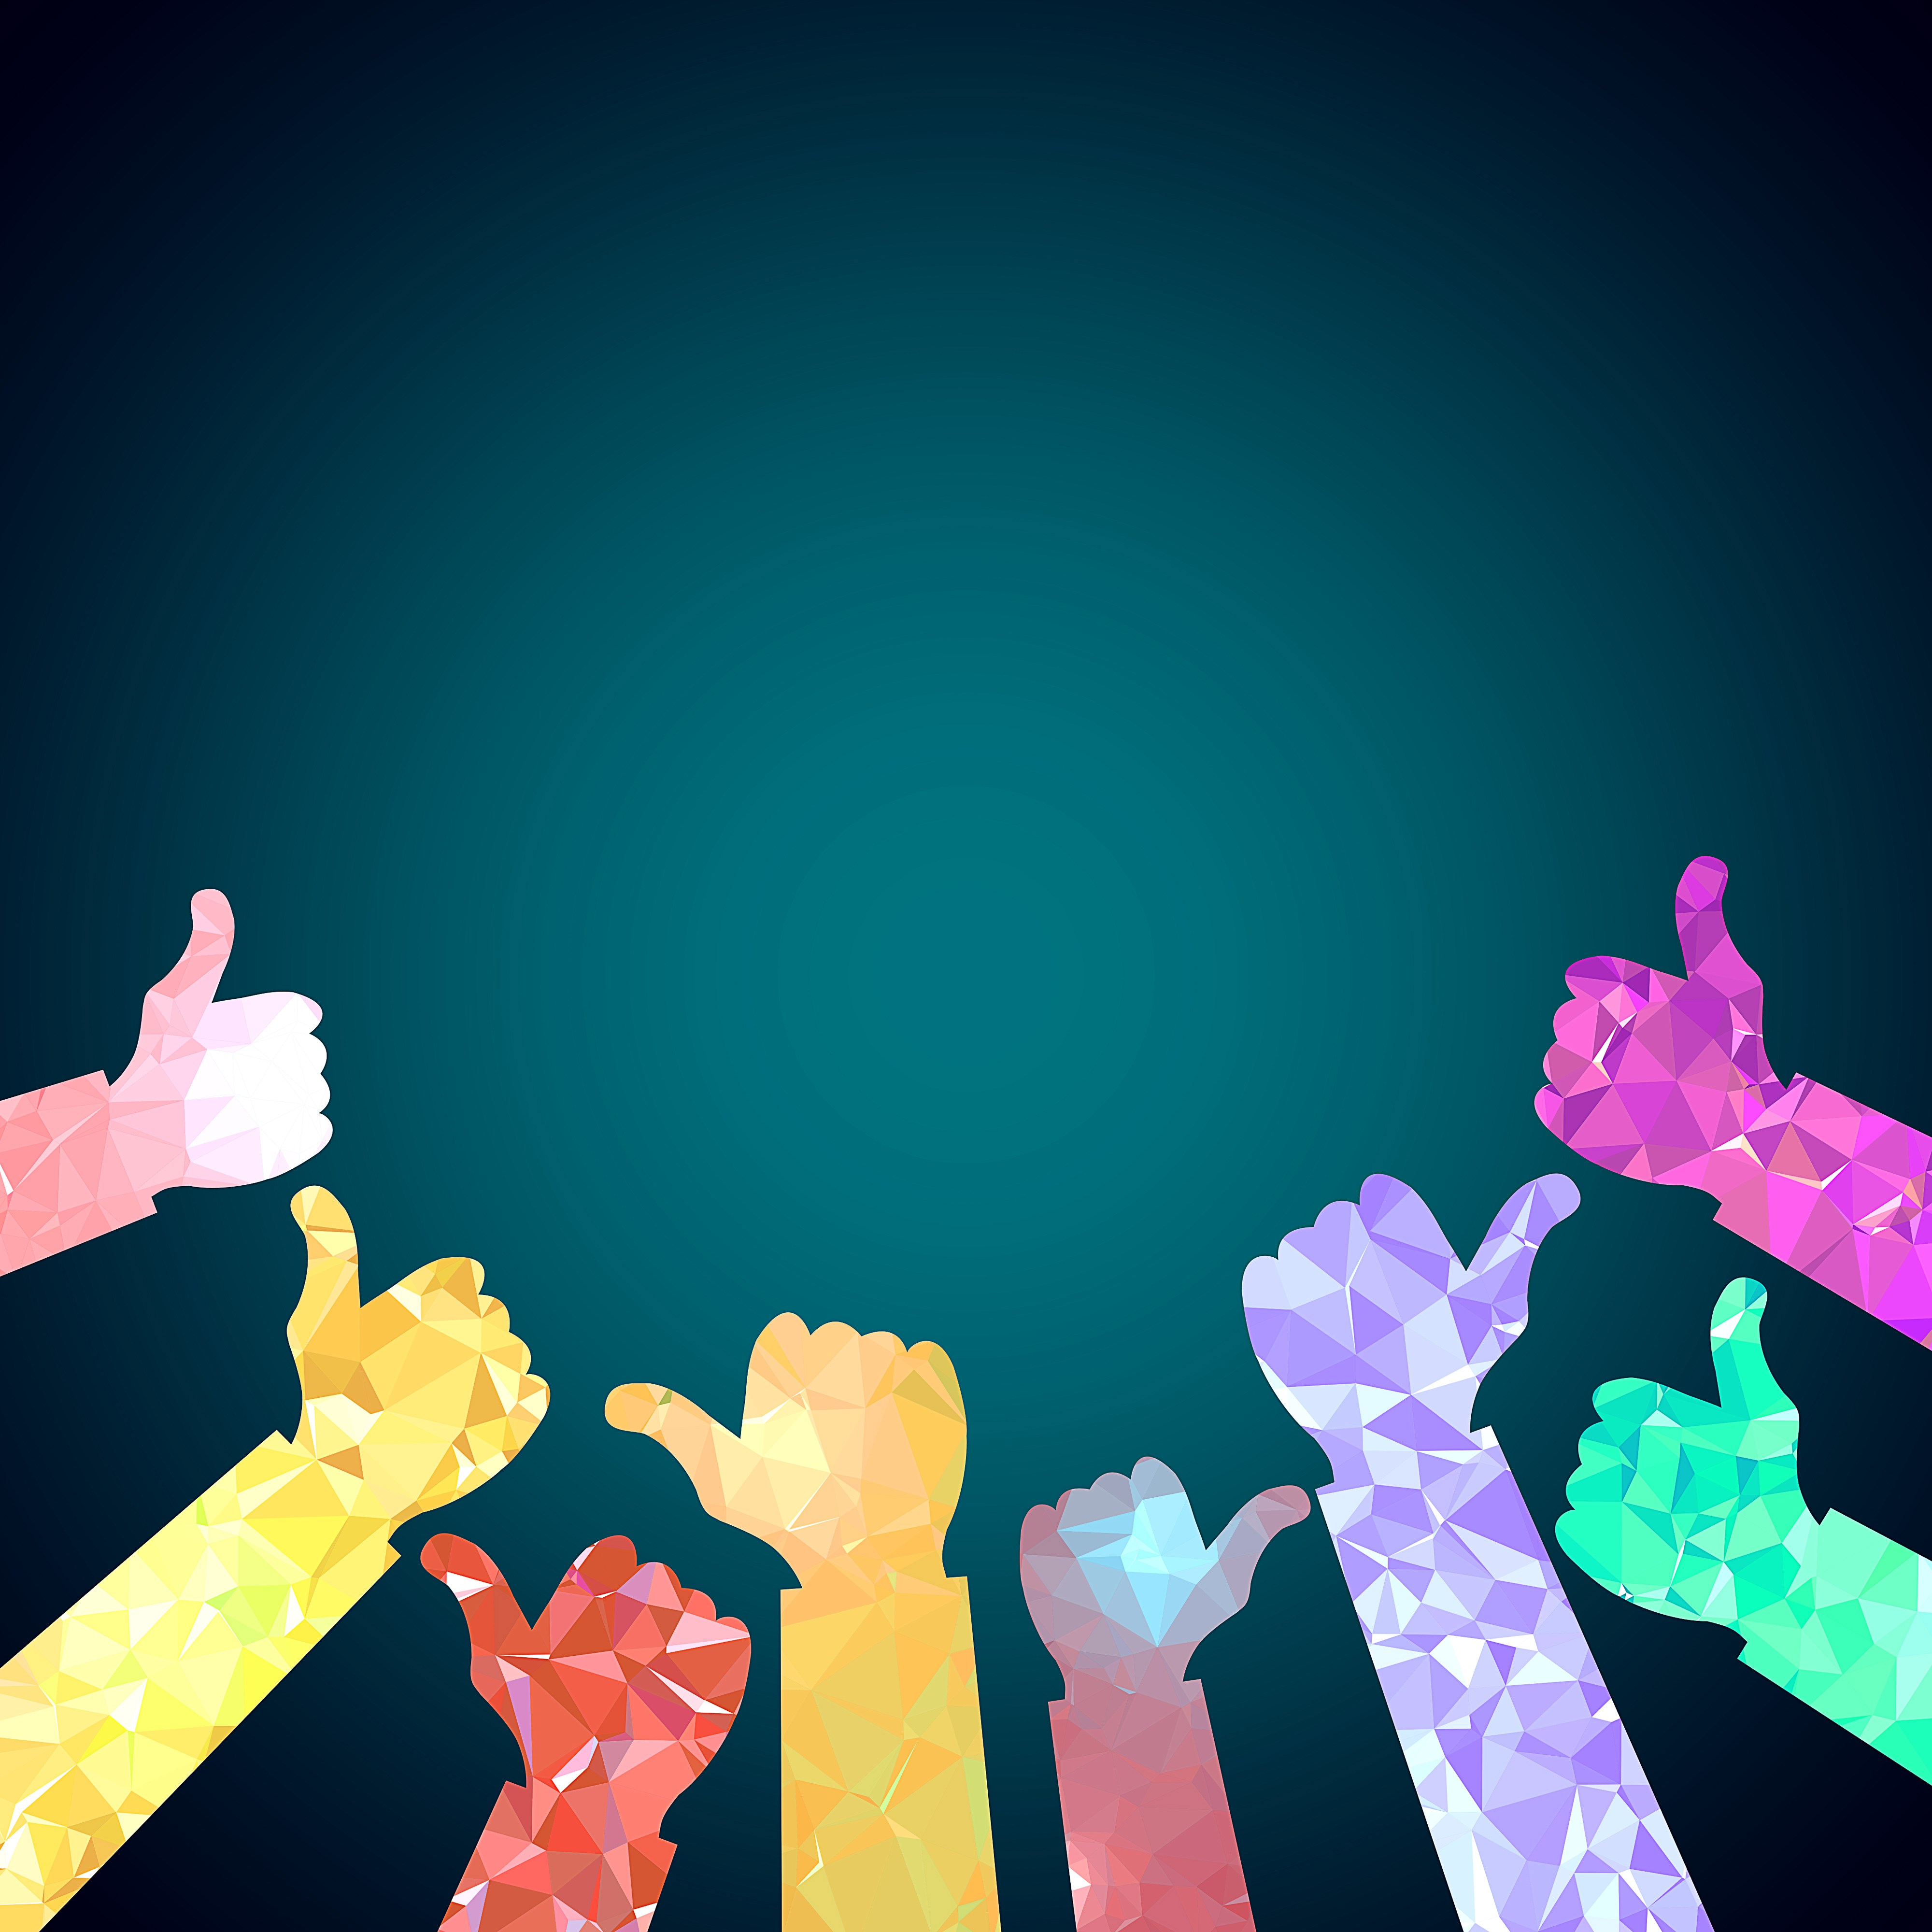 Image showing a group of 'thumbs up' hands (free image)